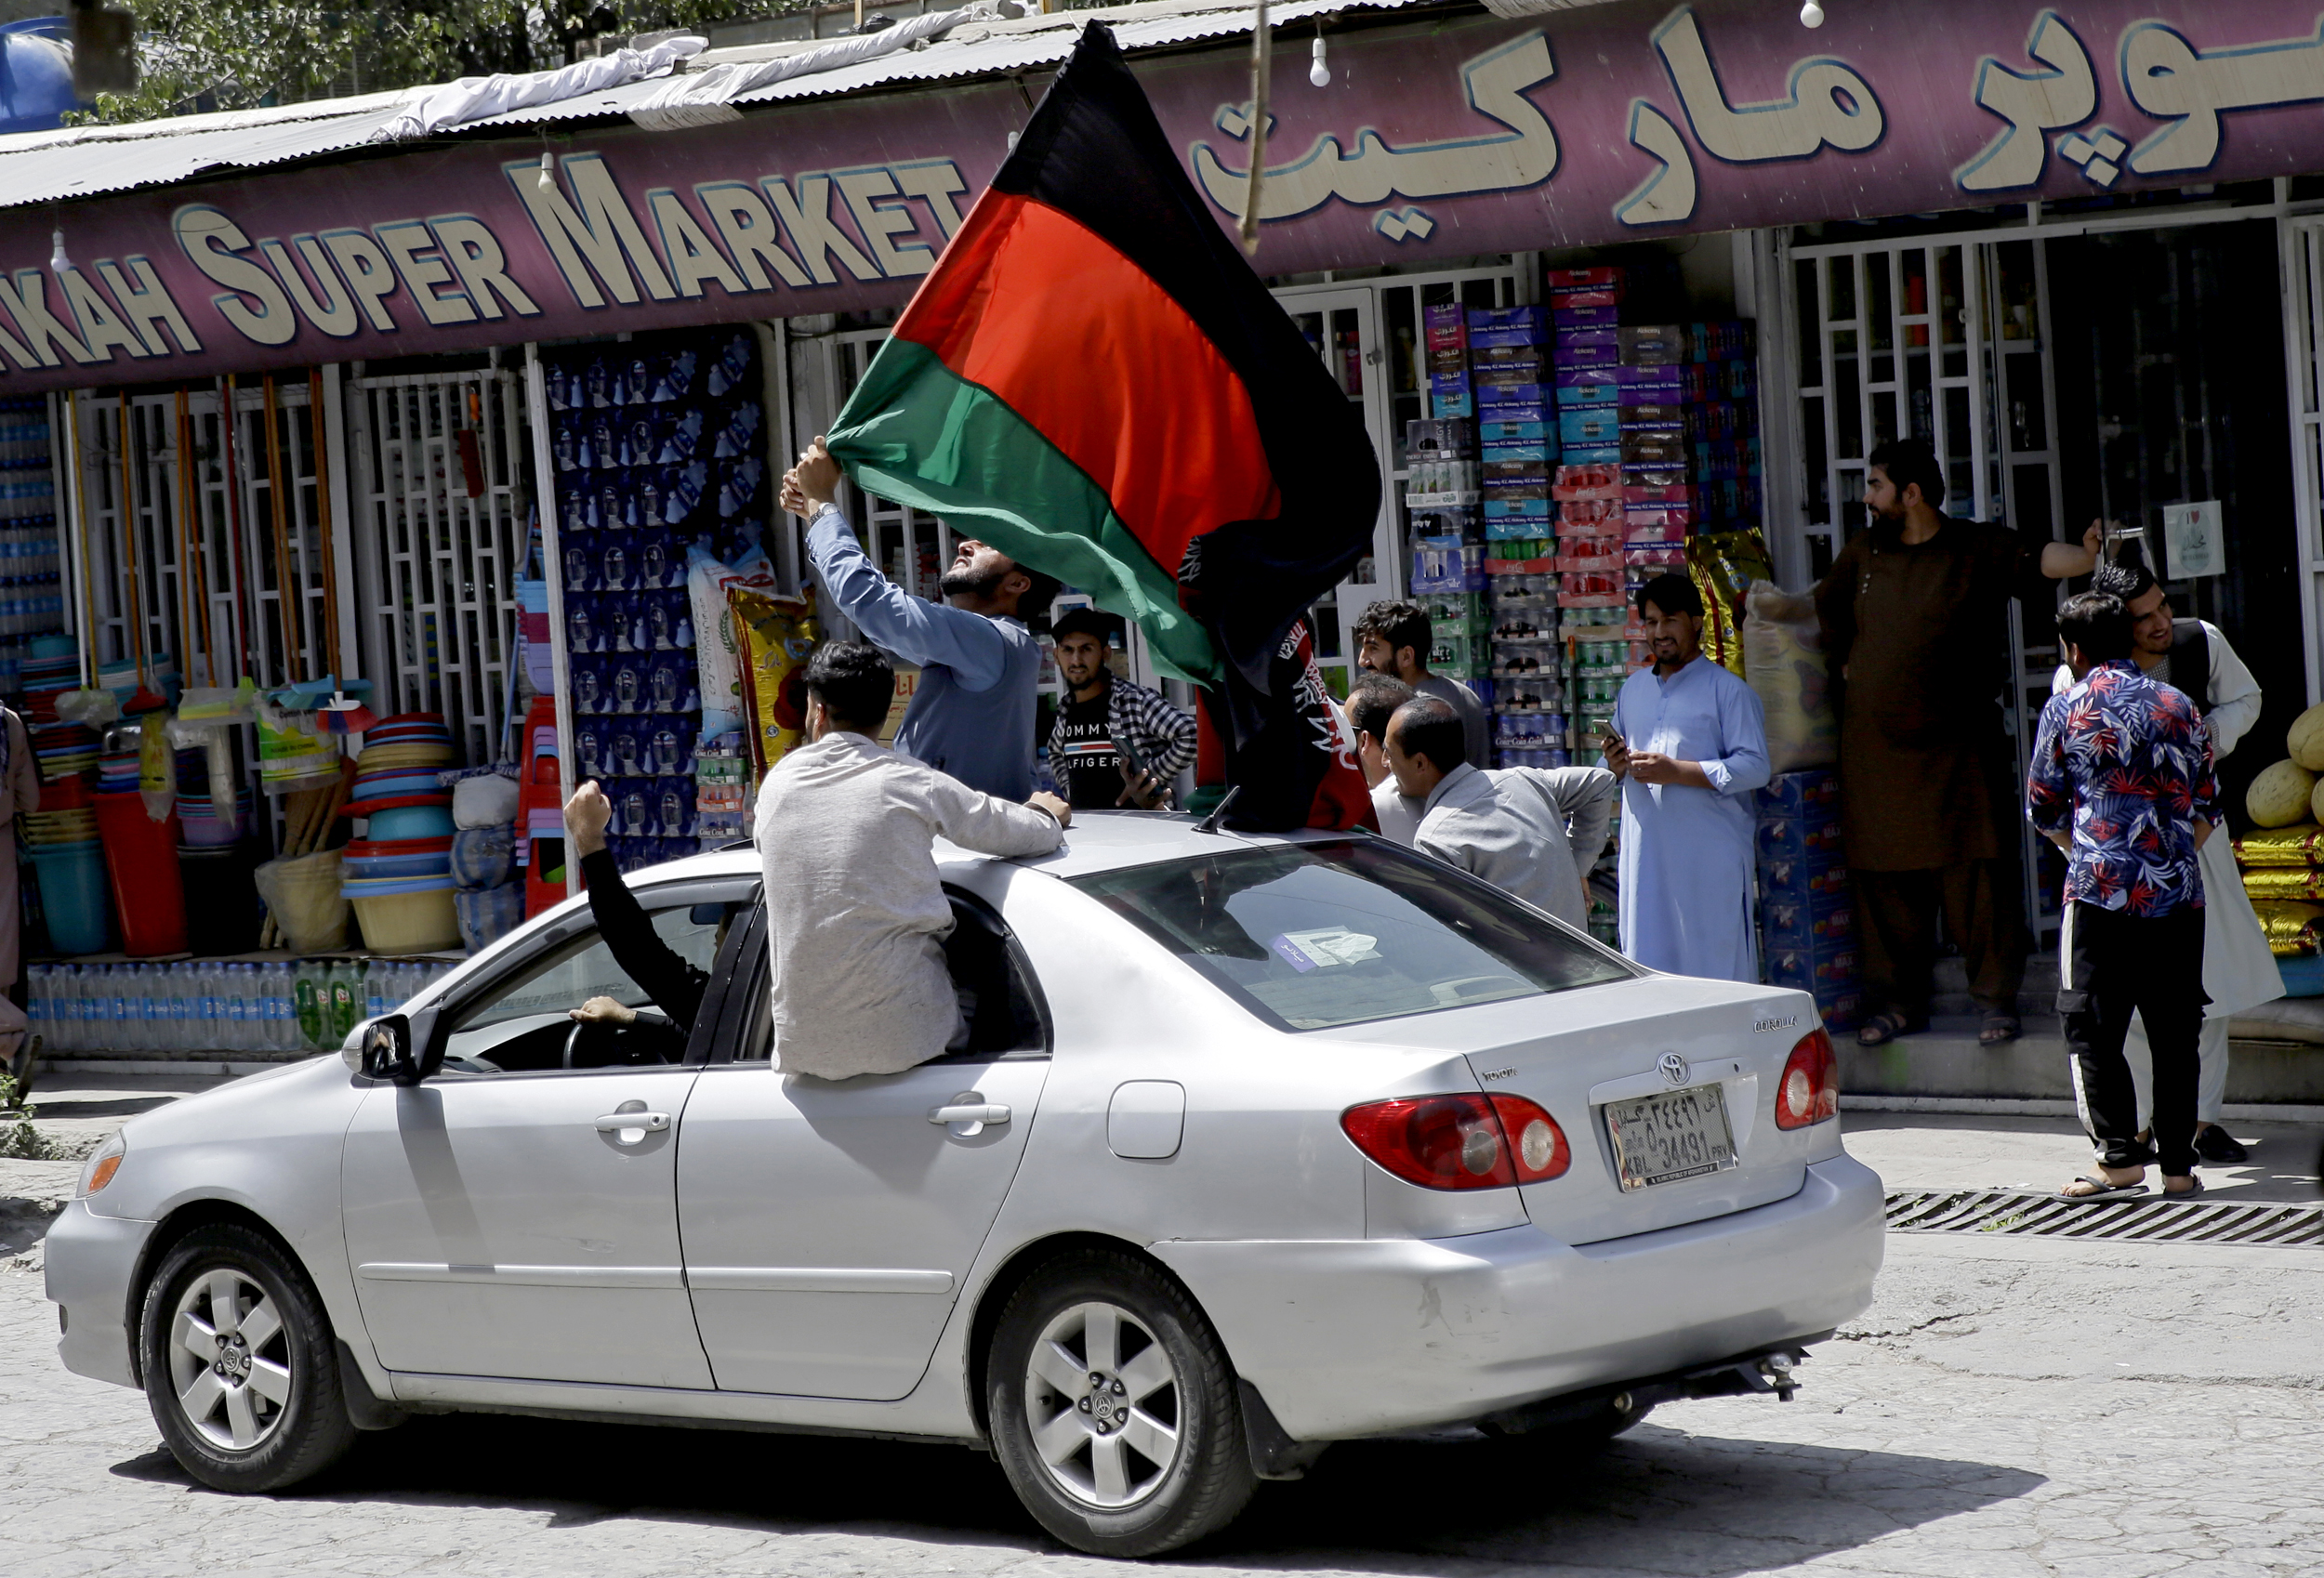 Protests spread as Taliban face early challenges to rule over uneasy Afghanistan